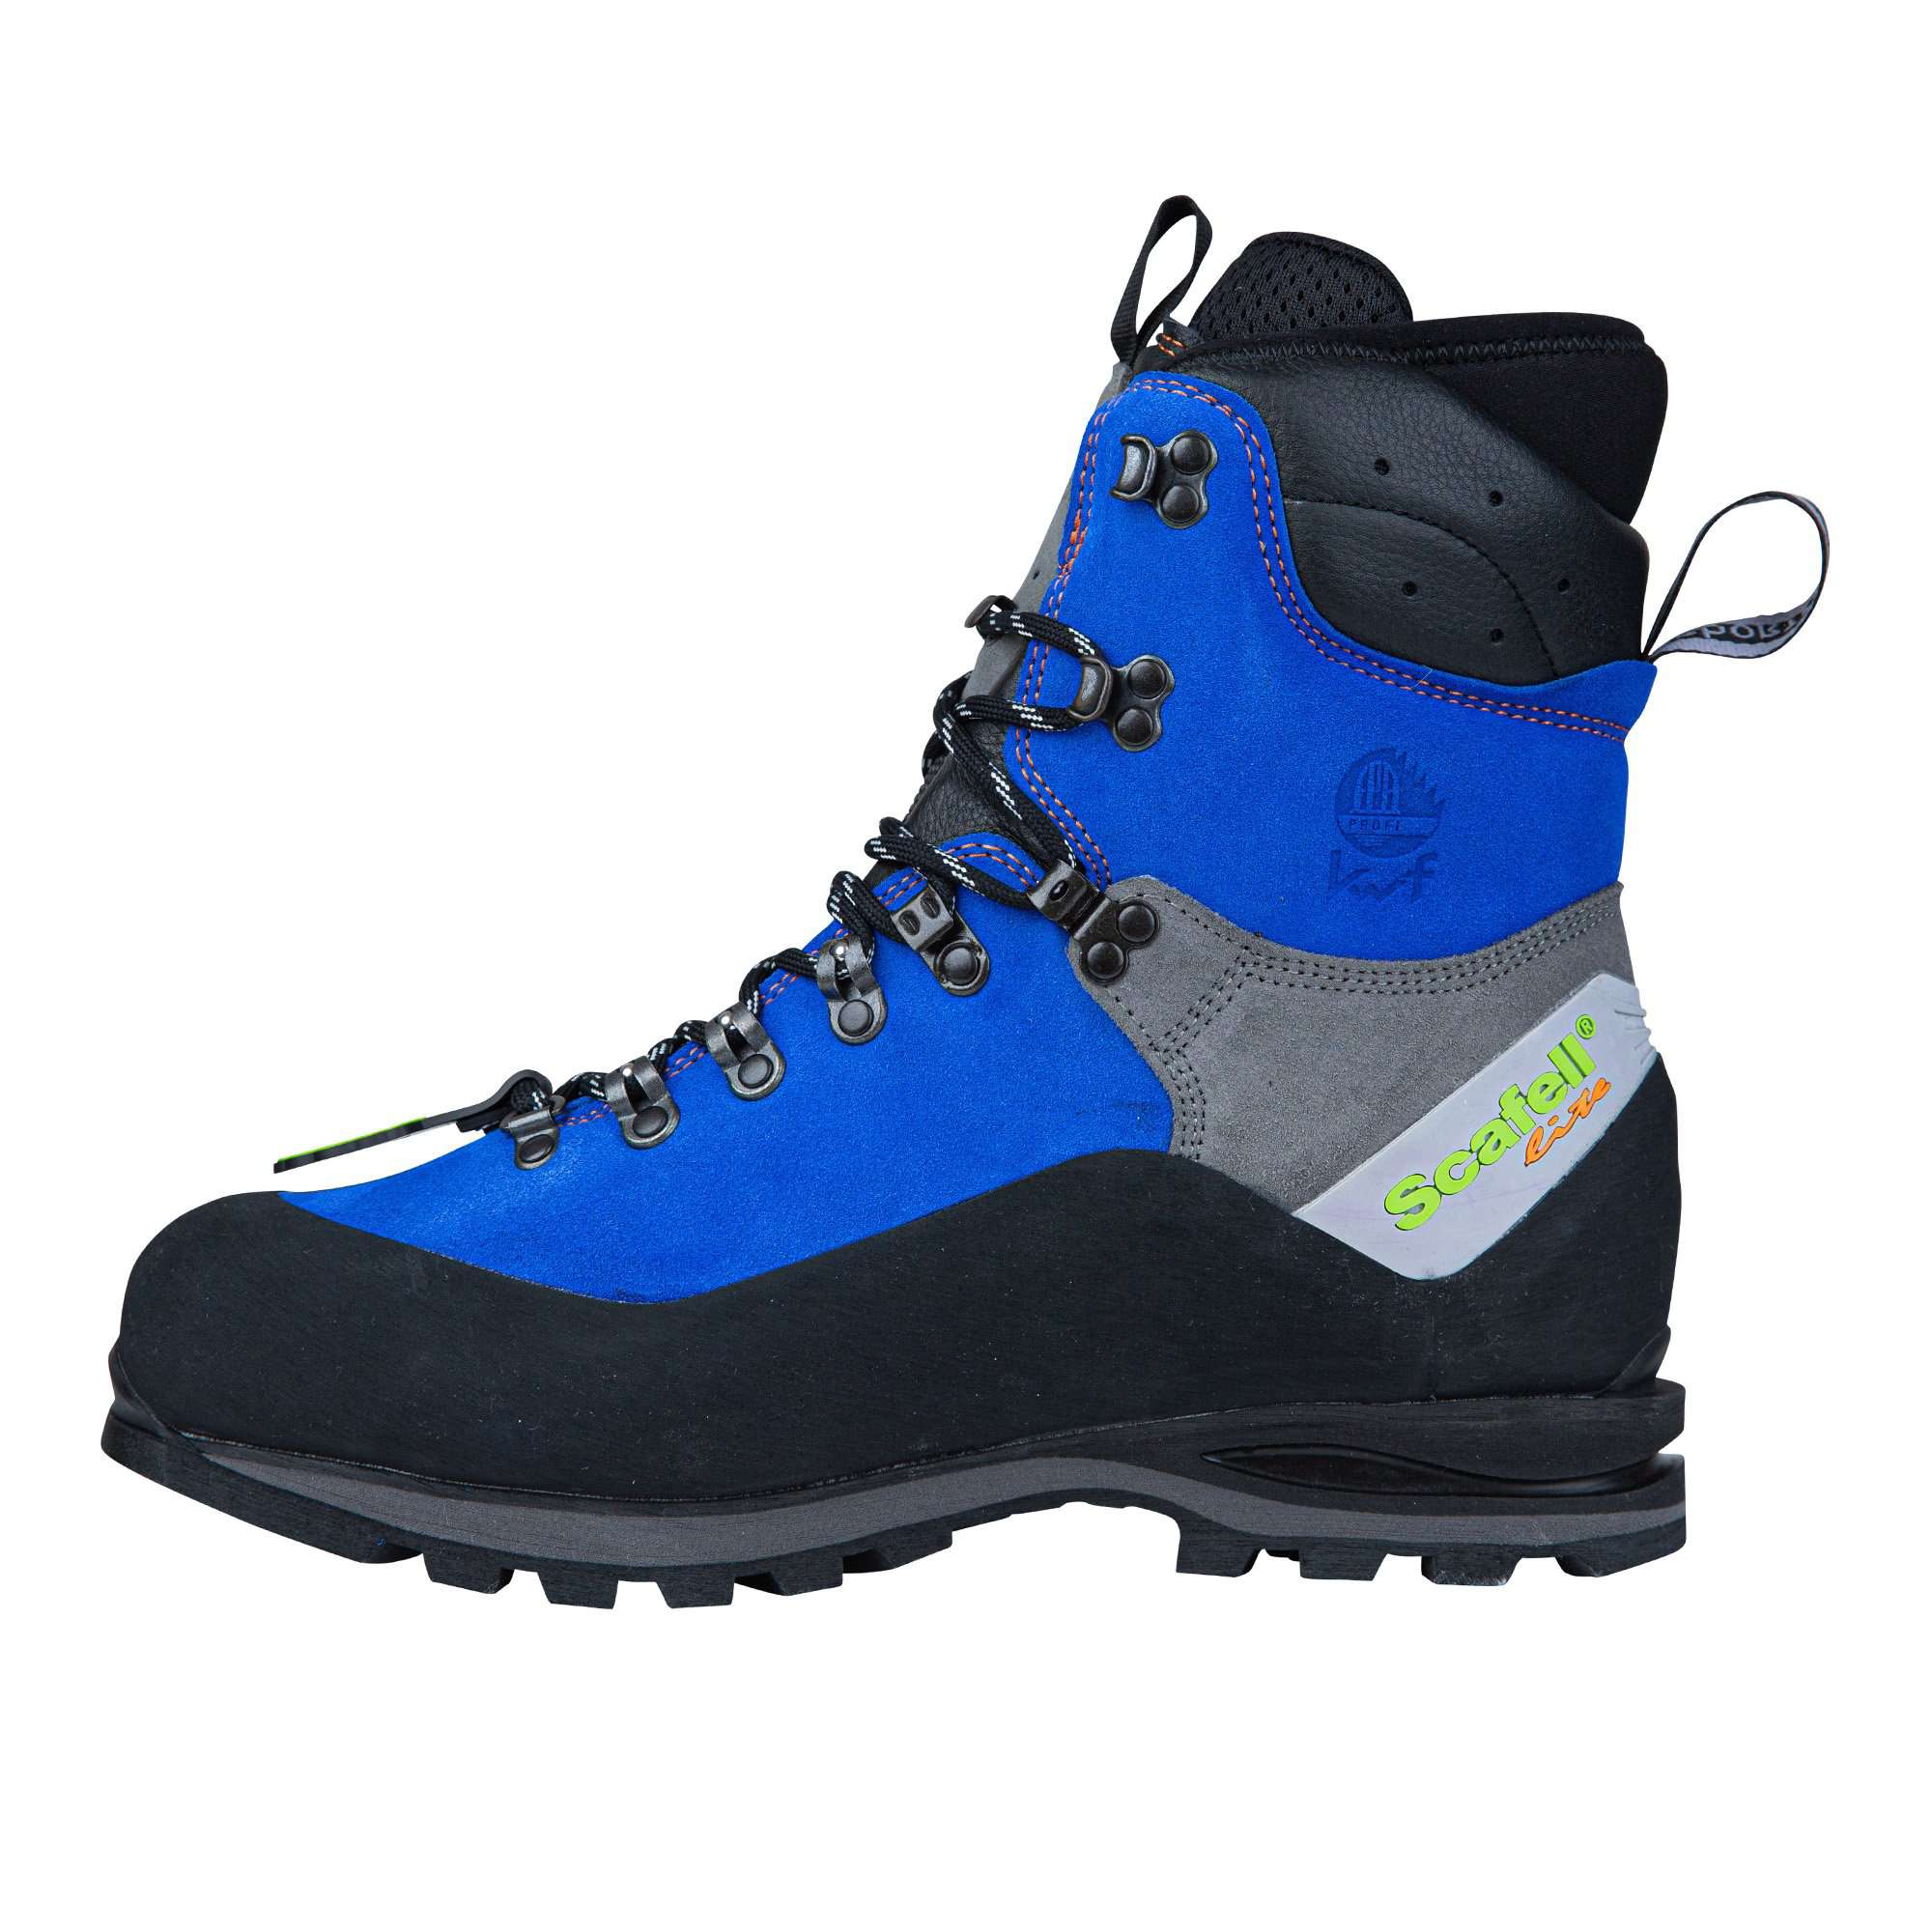 Scafell Lite Class 2 Chainsaw Boot - Blue - AT33300 - Arbortec Forestwear